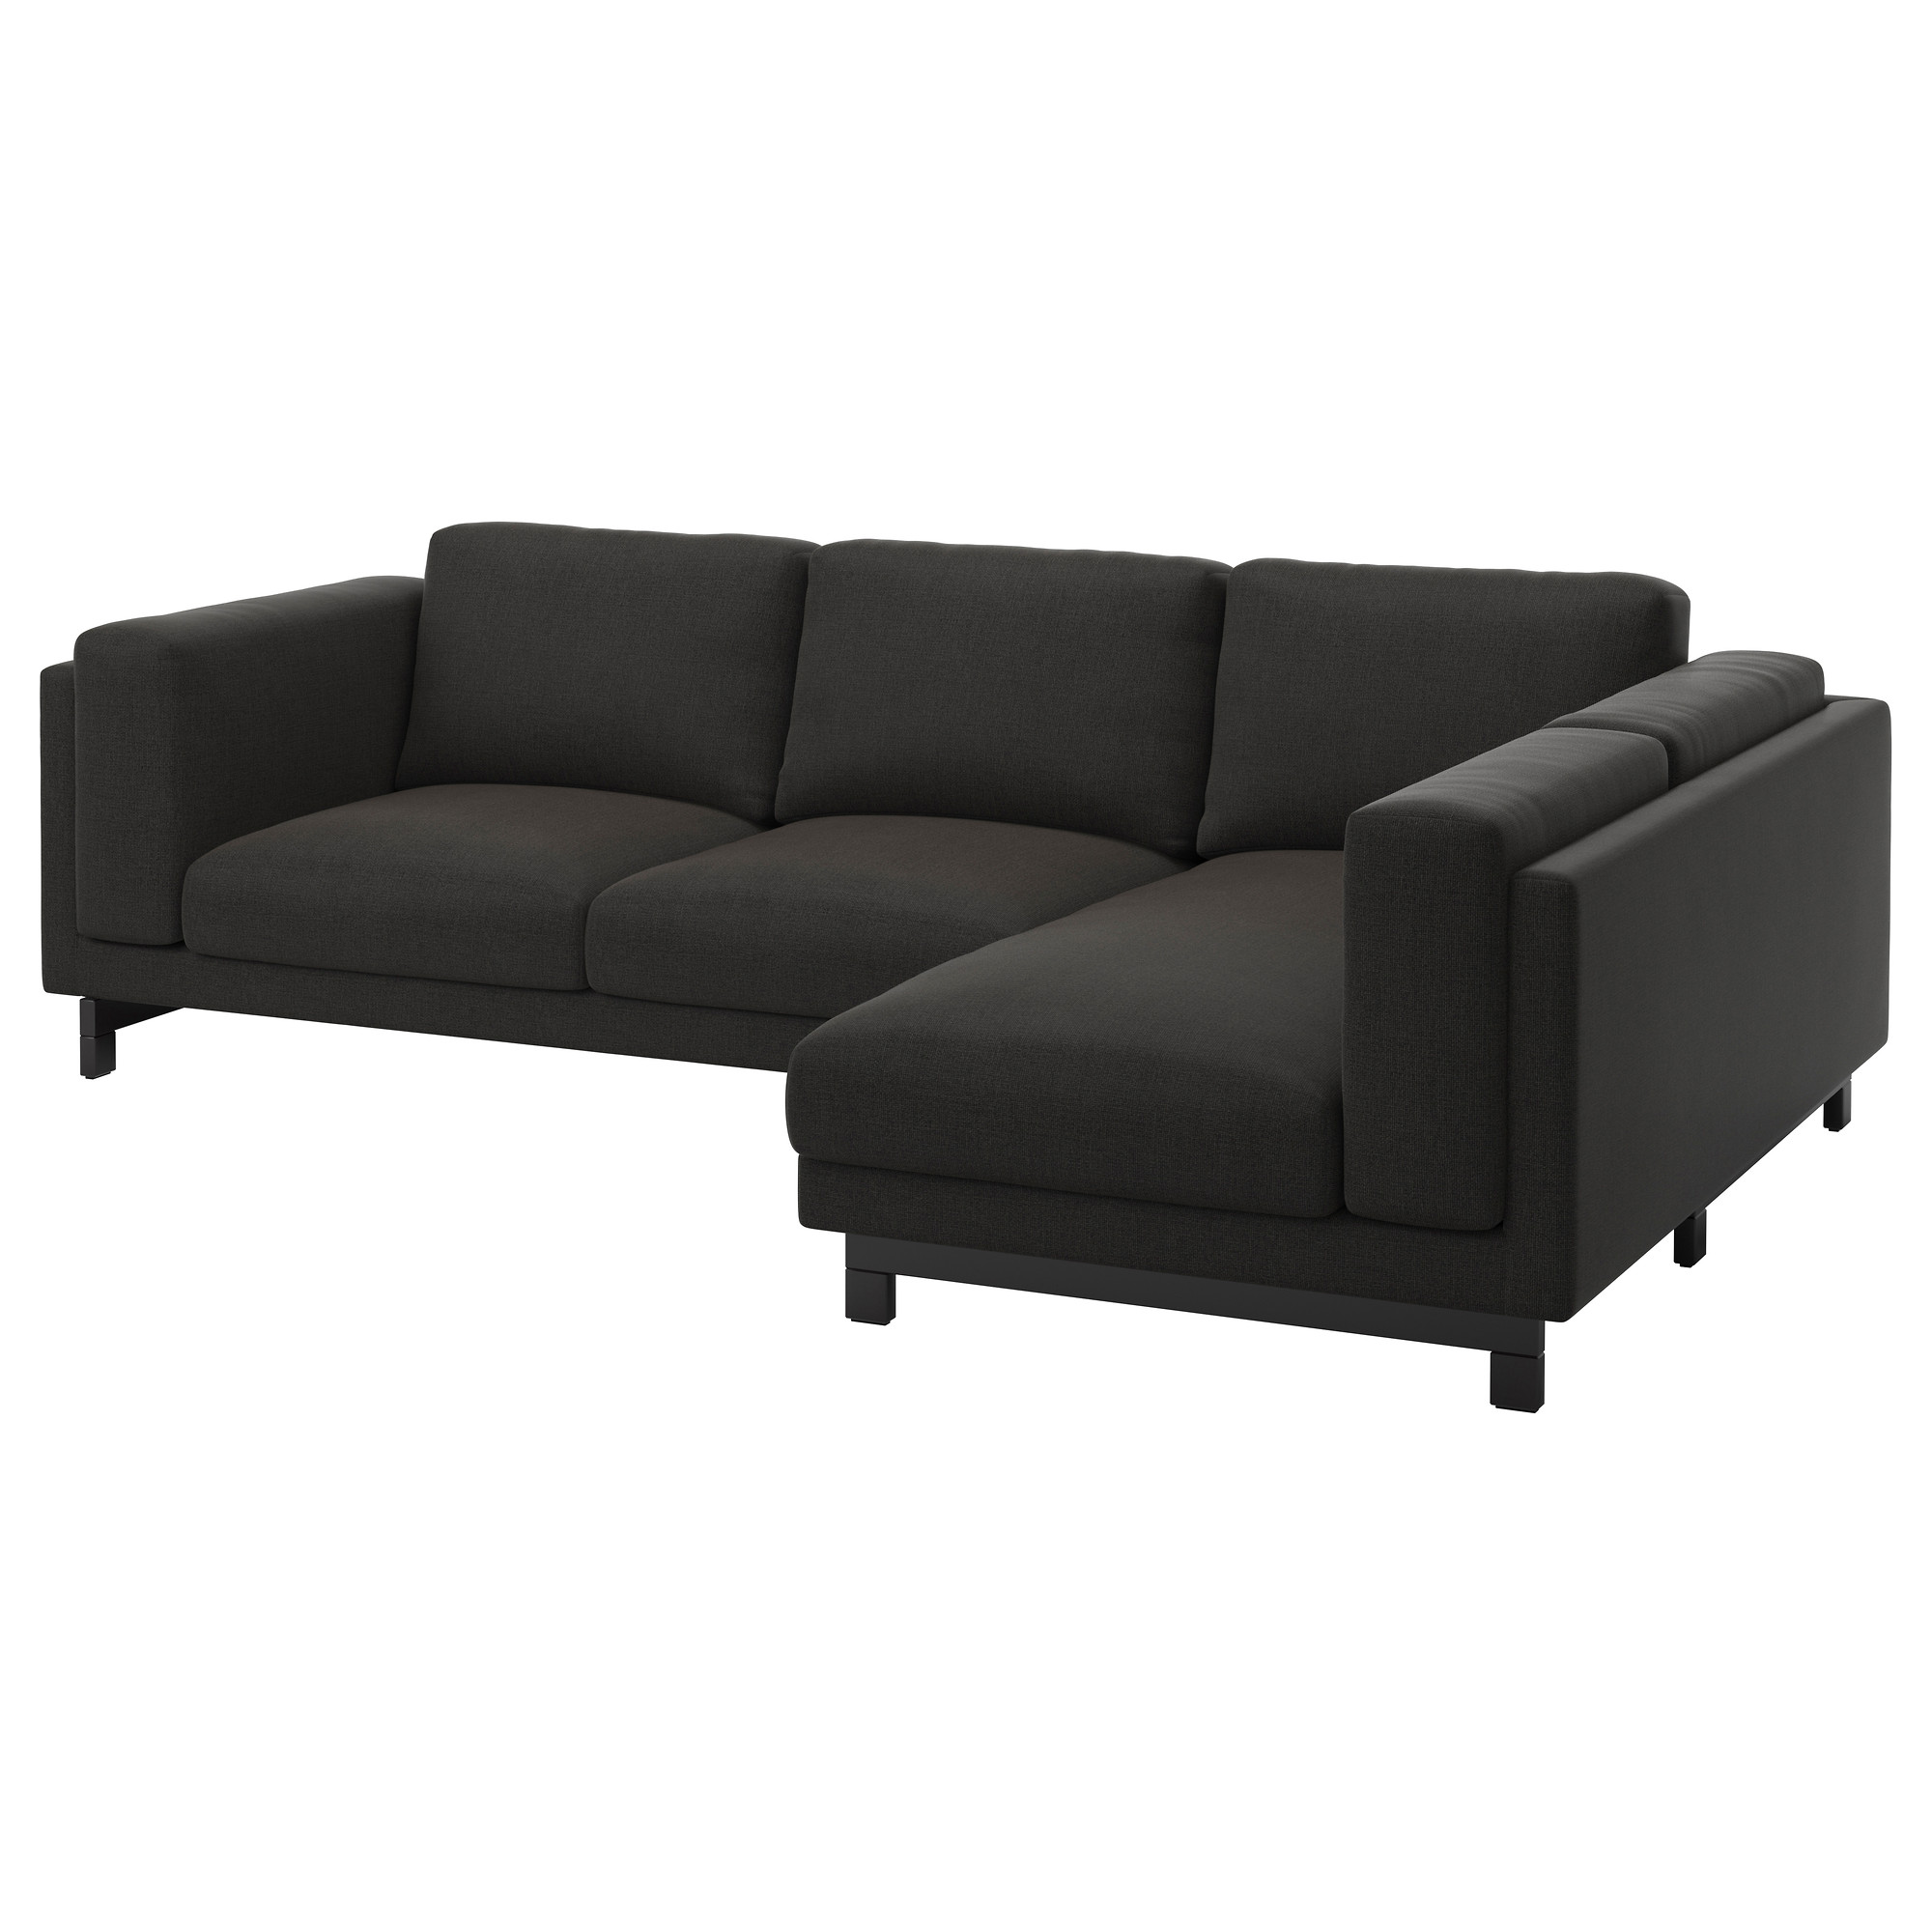 Sofa ikea  NOCKEBY Sectional, 3-seat, right - right/Tallmyra light beige ...